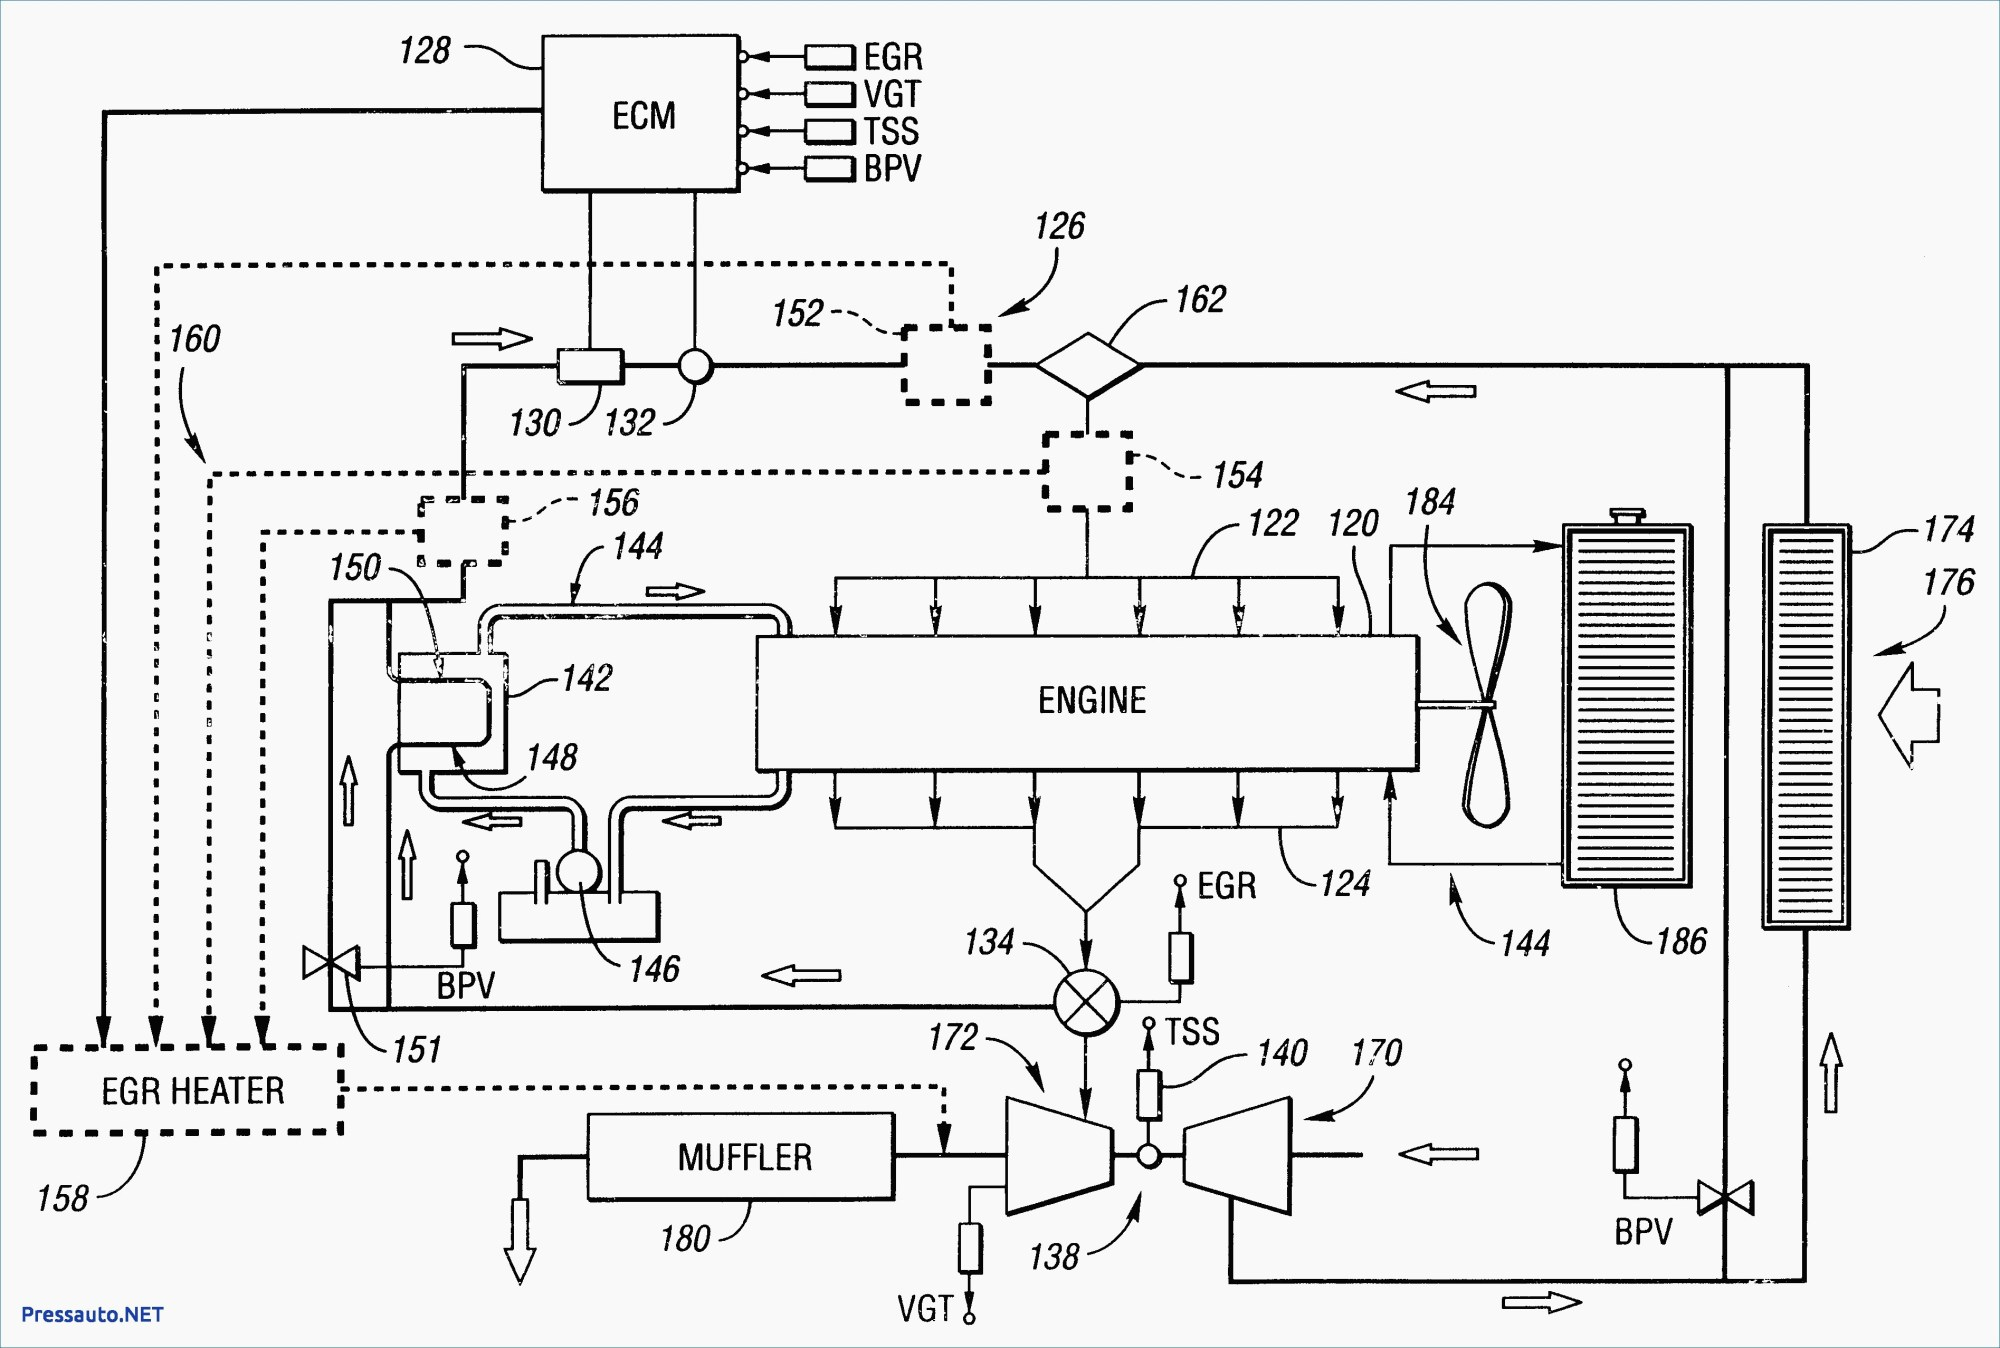 hight resolution of furnace sequencer wiring wiring schematic diagram goodman electric furnace wiring diagram electric furnace sequencer wiring diagram